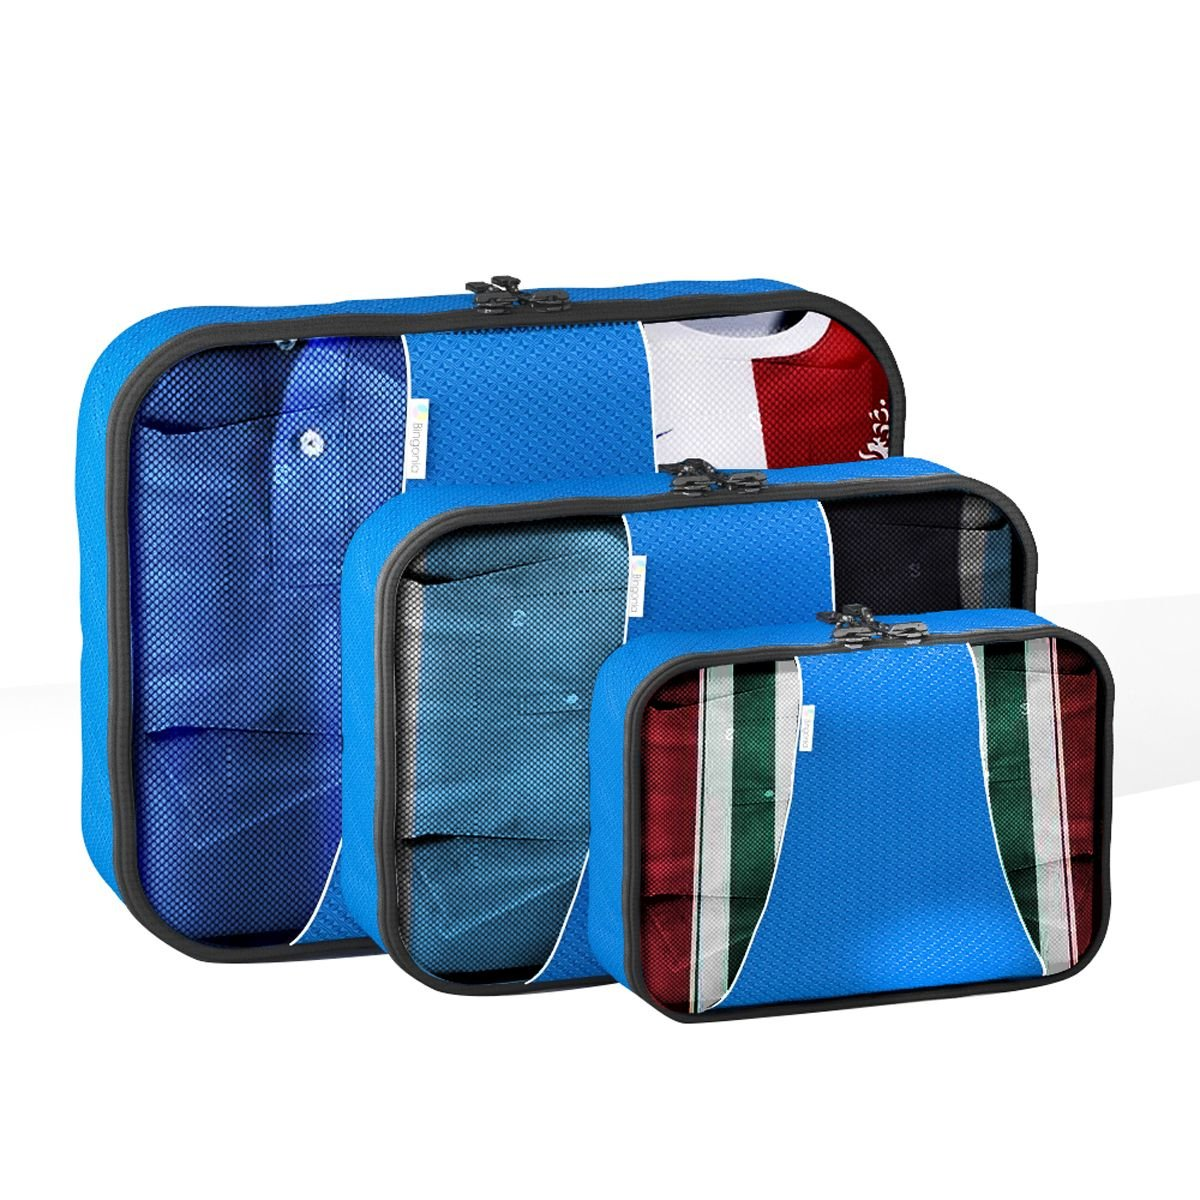 Blue By Bingonia Travel Accessories 4 pc Value Set Luggage Organizer Packing Cubes Bonus Shoe Bag Included Lifetime Guarantee